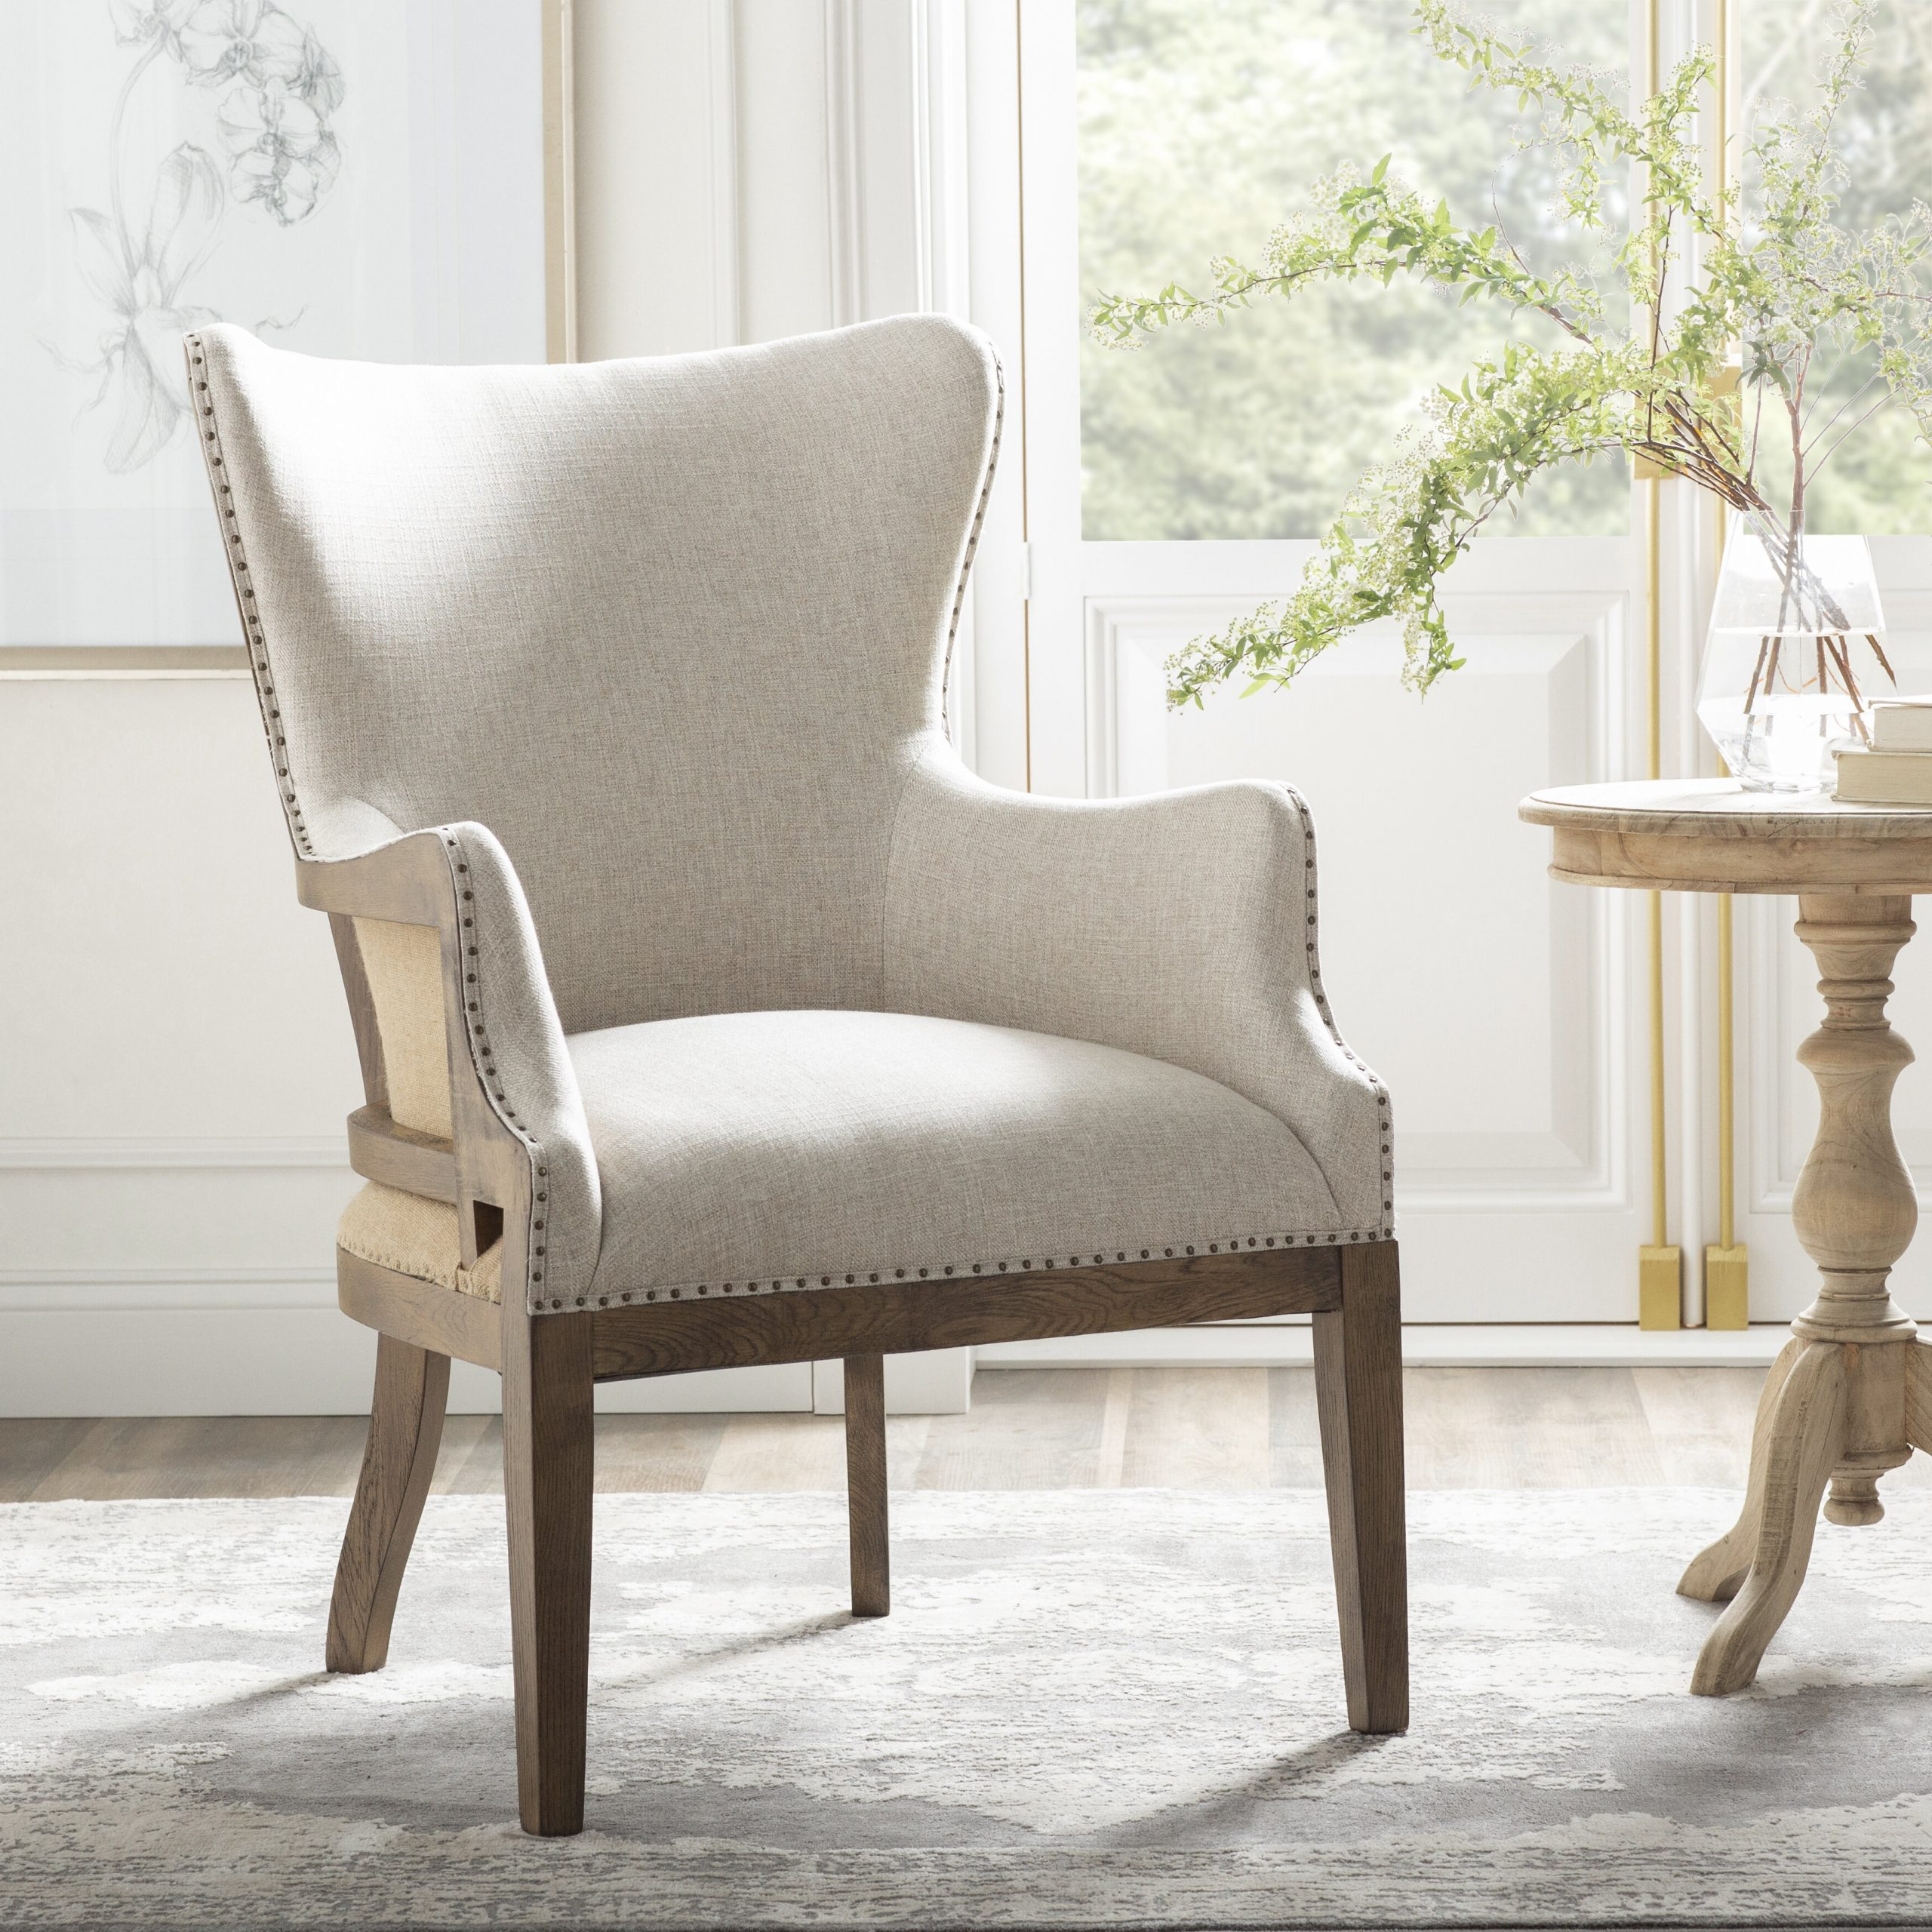 Wayfair Throughout Popular Hutchinsen Polyester Blend Armchairs (View 5 of 20)